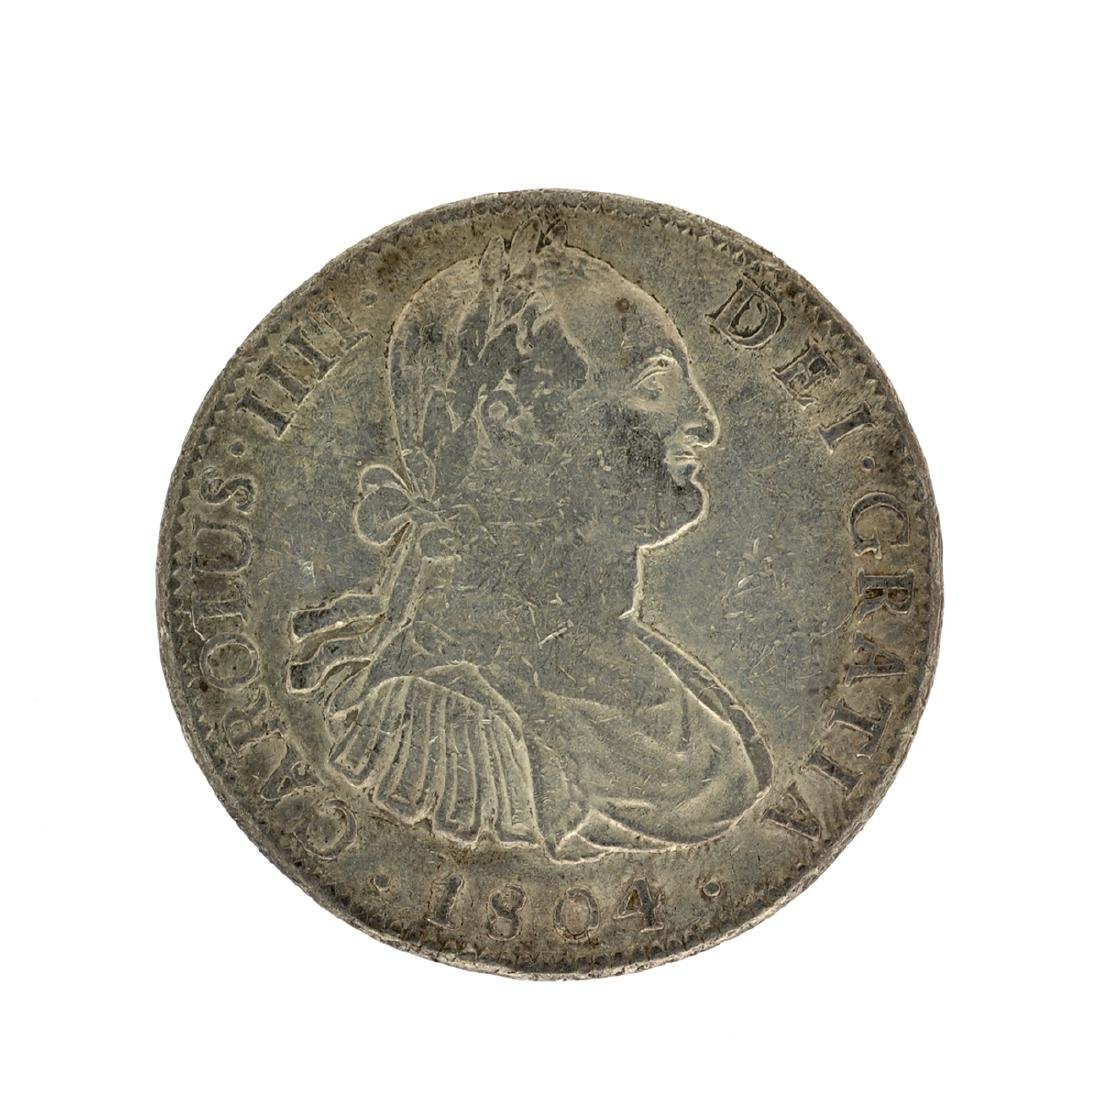 1804 Extremely Rare Eight Reales American First Silver